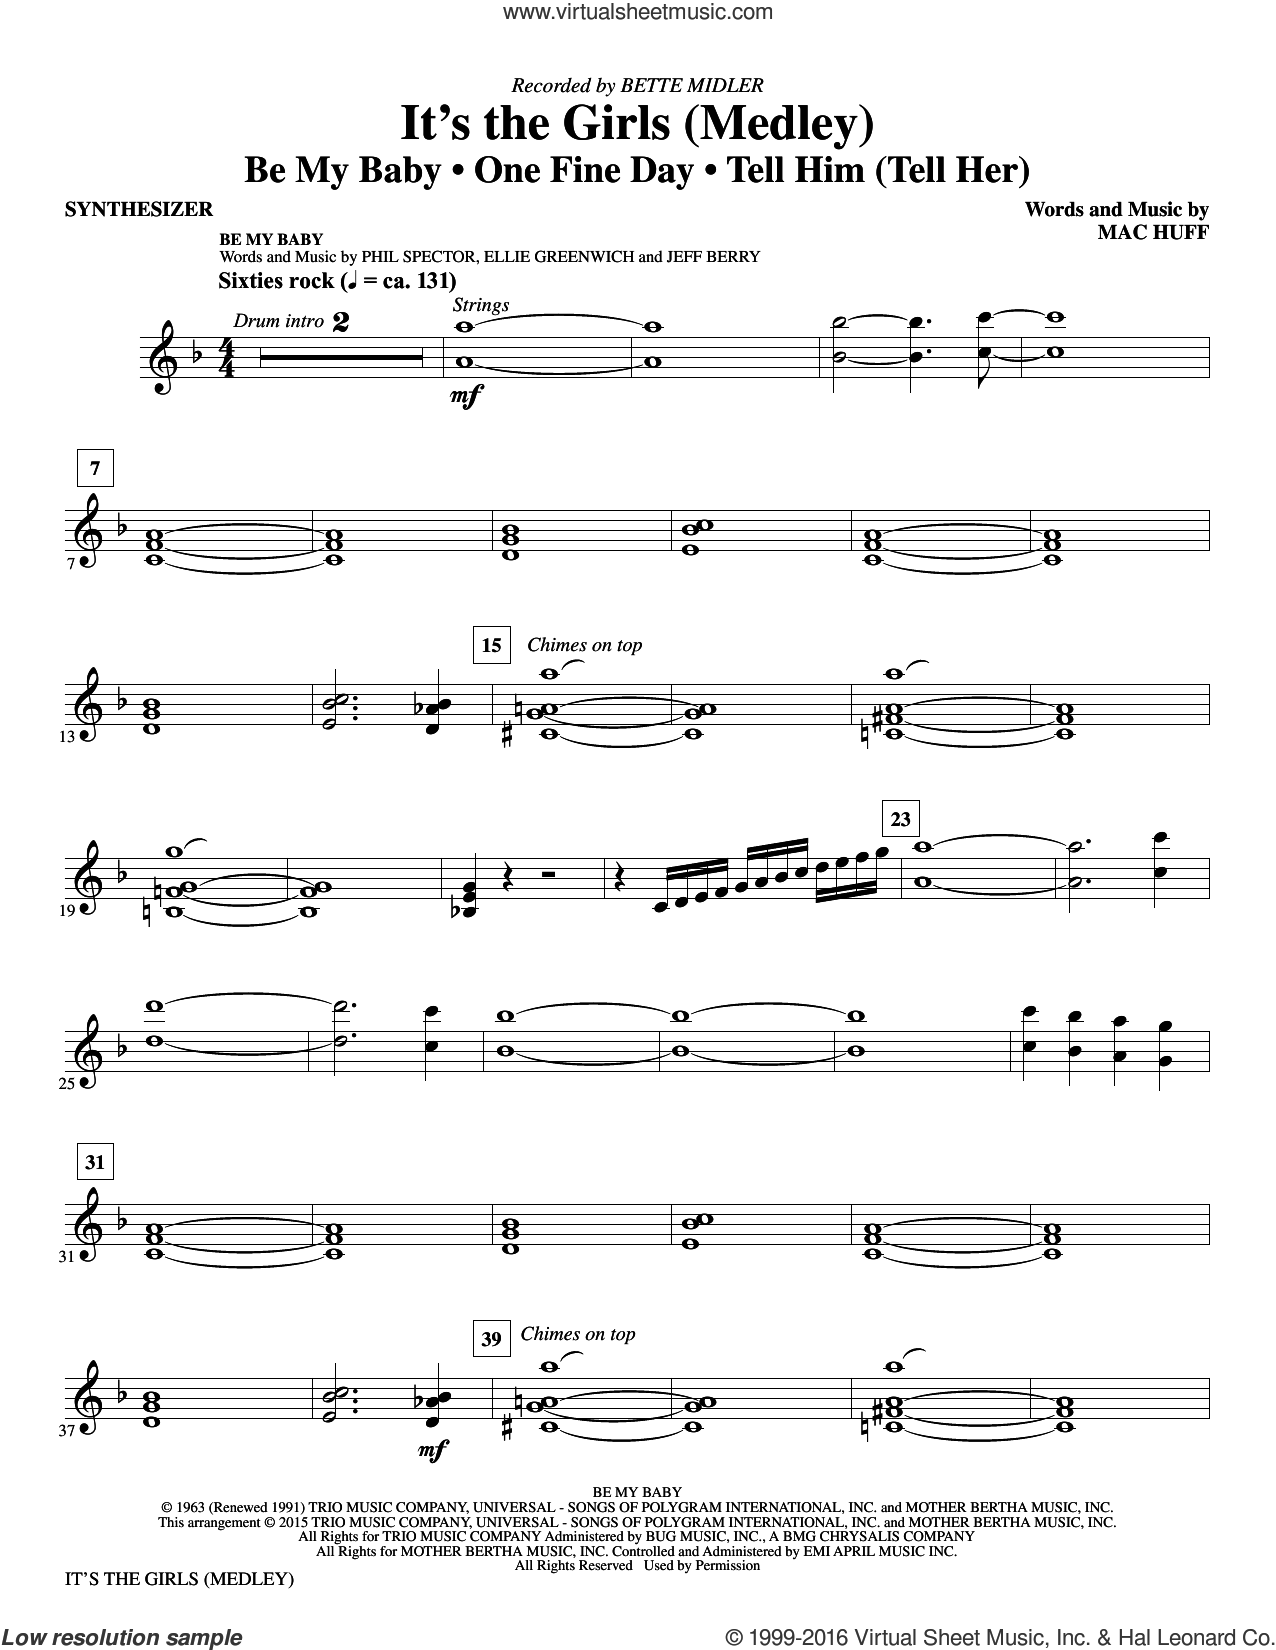 It's the Girls (Medley) sheet music for orchestra/band (synthesizer) by Phil Spector